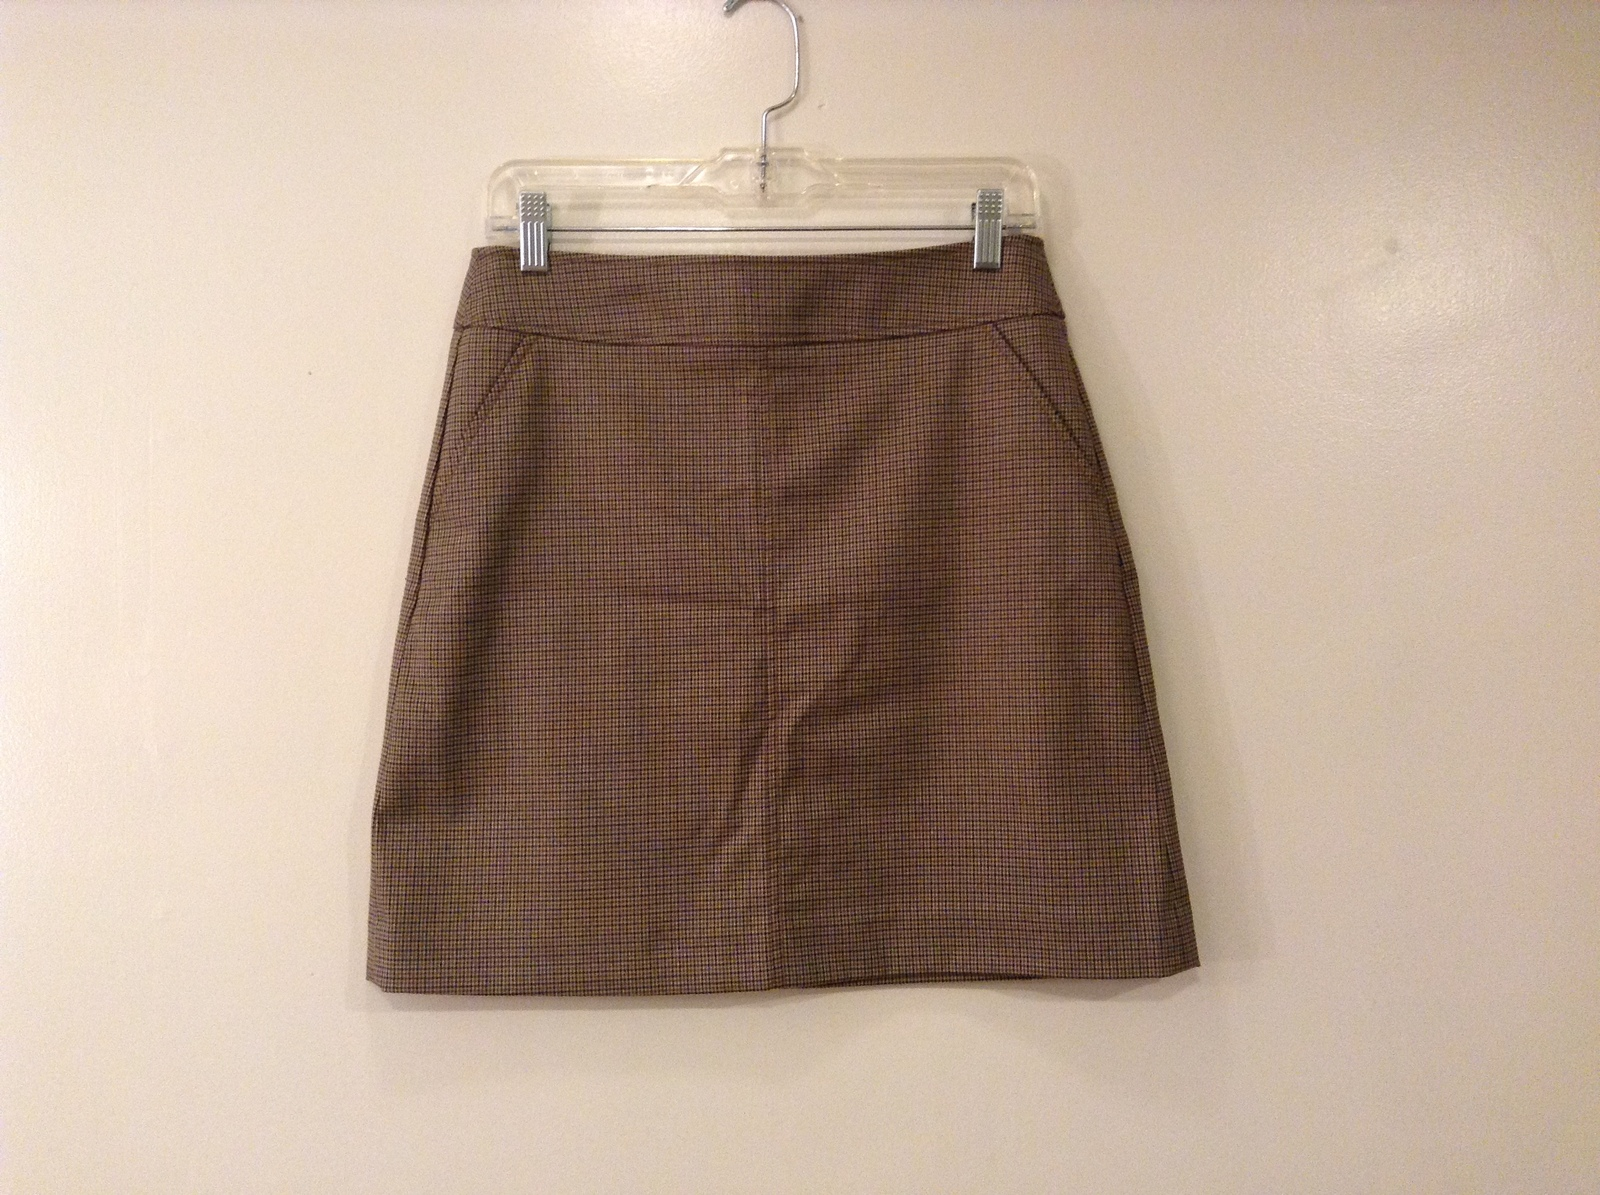 UNI QLO Short Pencil Skirt size 8 Black-Brown Houndstooth Pattern